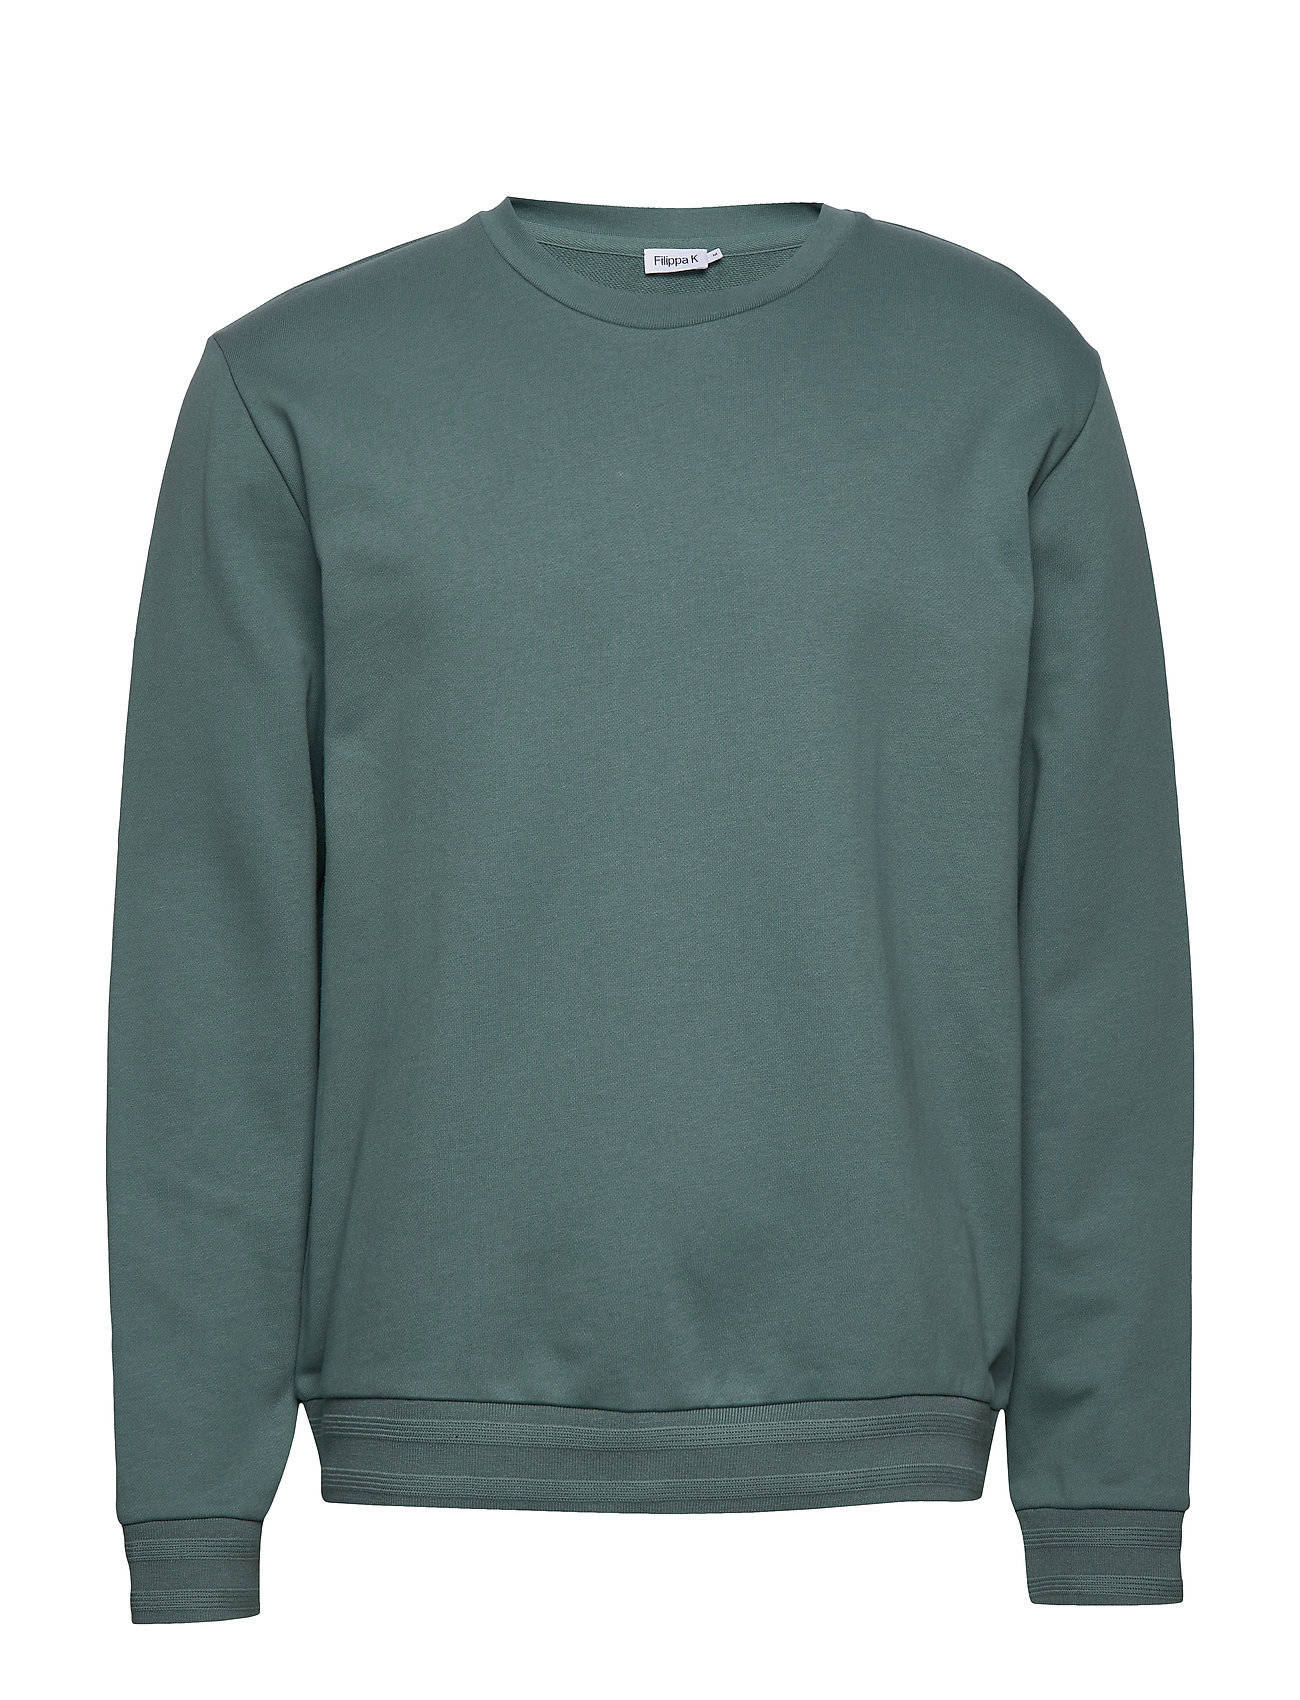 Filippa K M. Isaac Sweatshirt - MINT POWDE